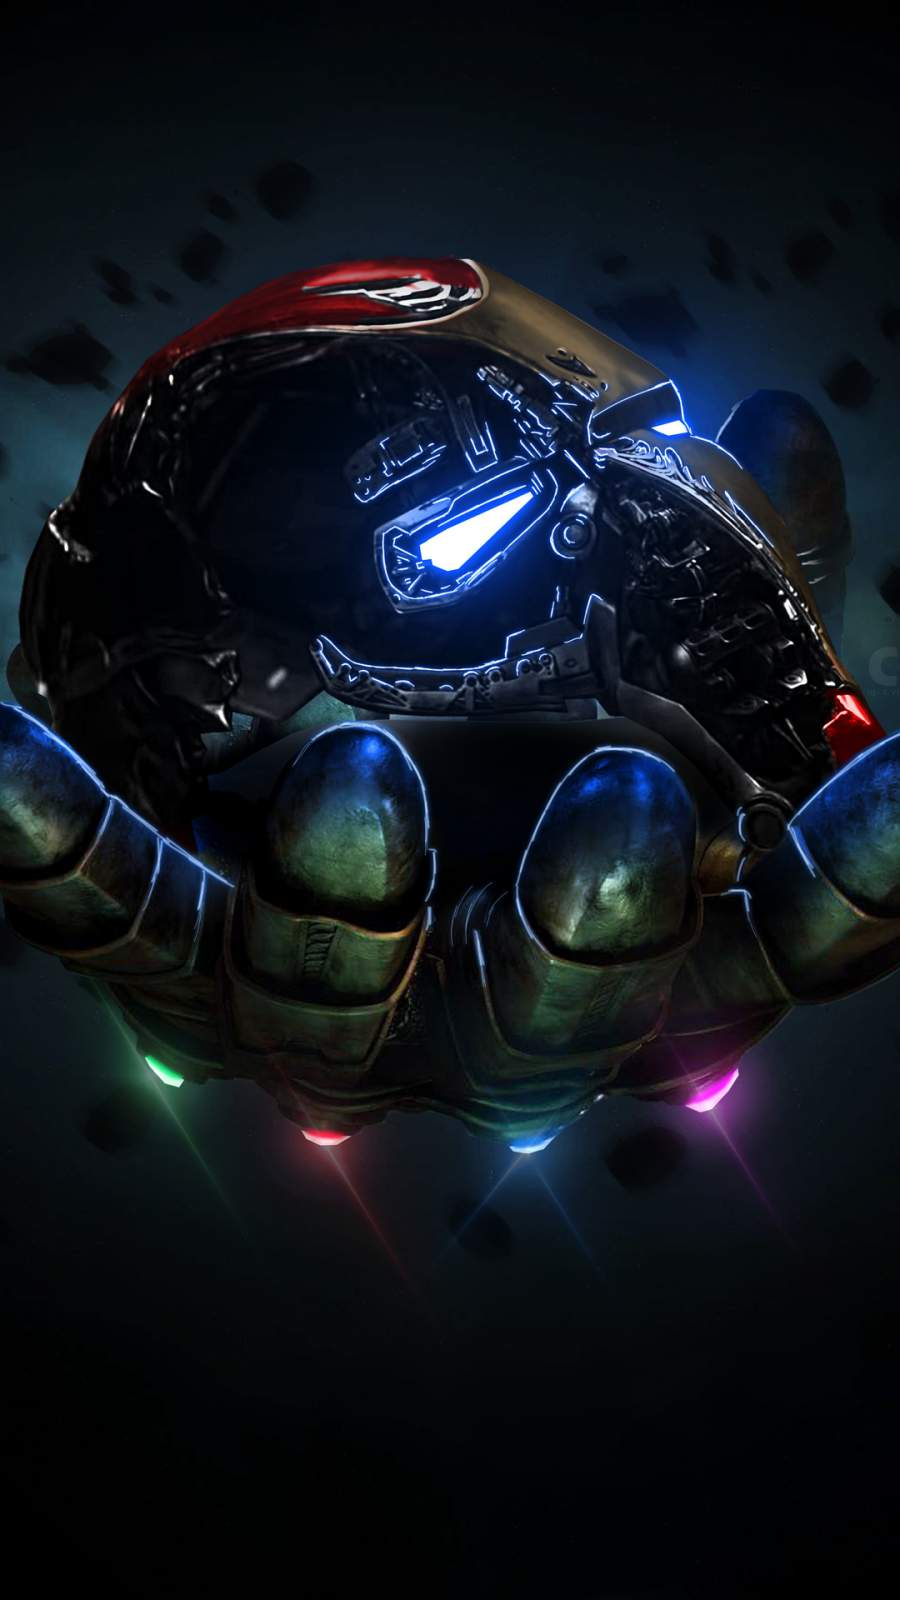 Thanos Infinity Gauntlet Holding Iron Man Mask iPhone Wallpaper